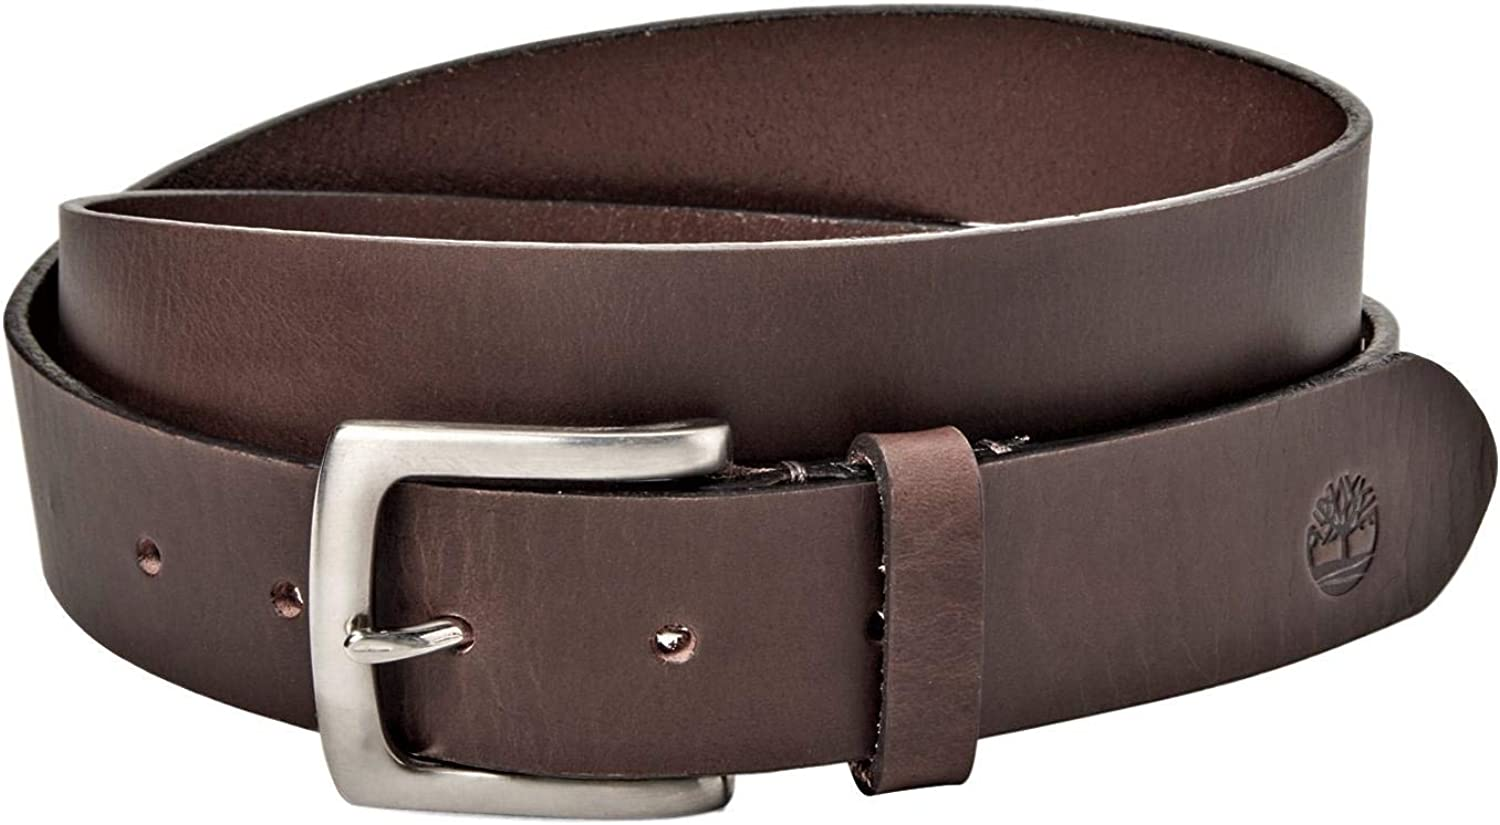 Timberland Mens Belt Genuine Leather Dressy Classic Black or Brown Sizes 32-42